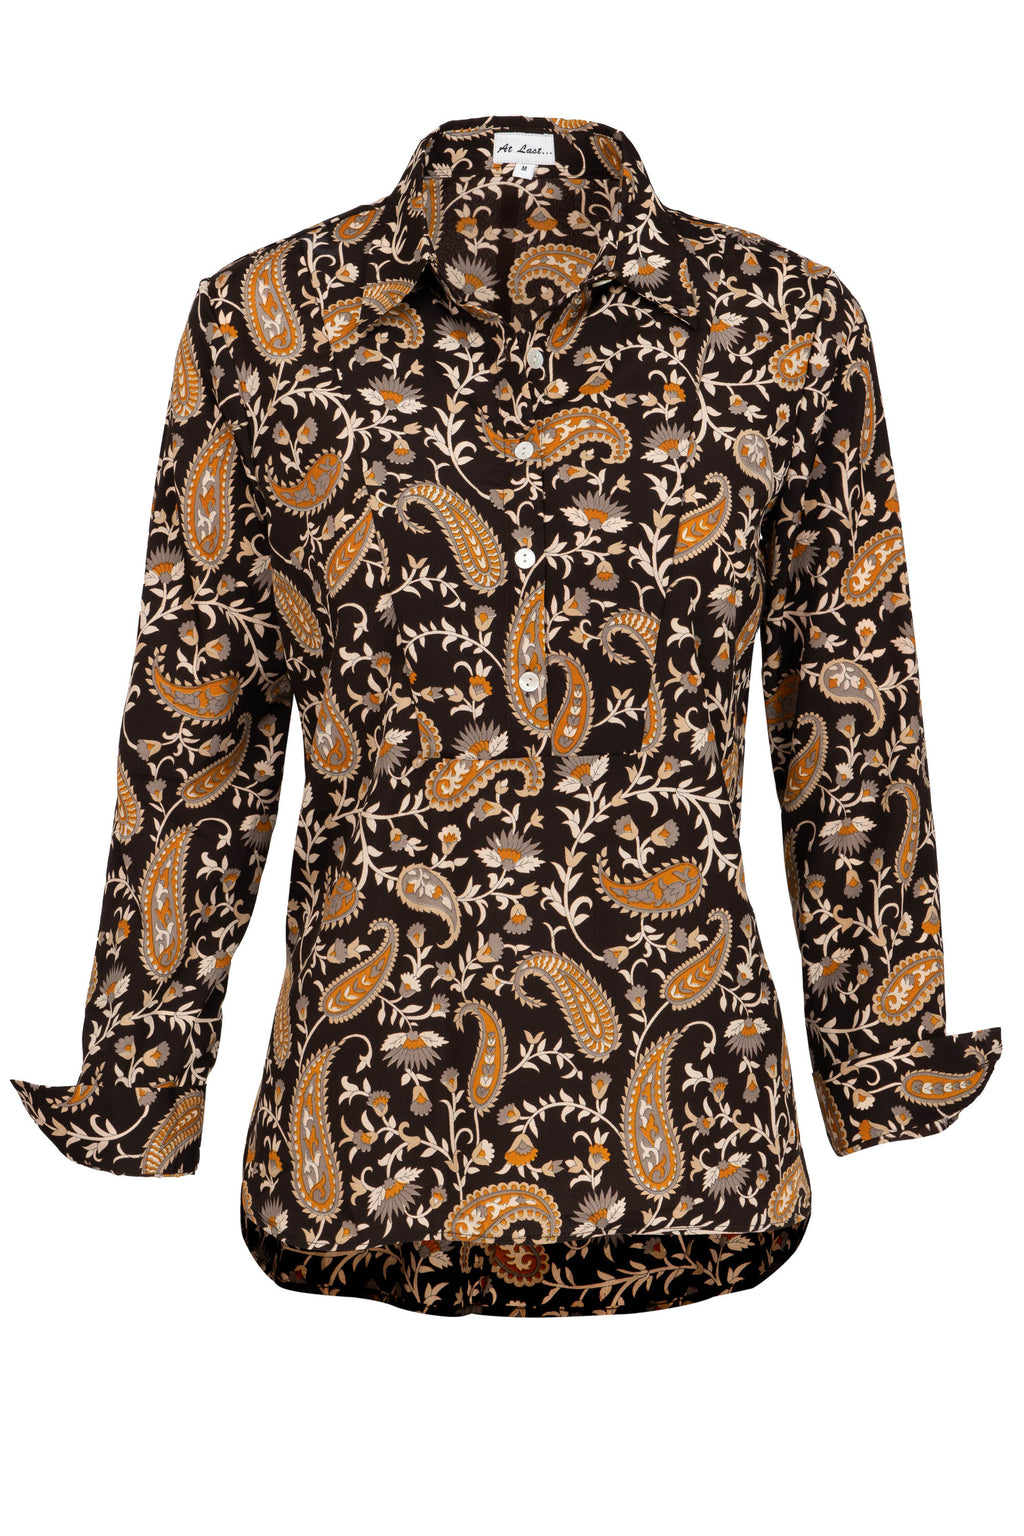 Soho Shirt with Back Detail- Black Paisley